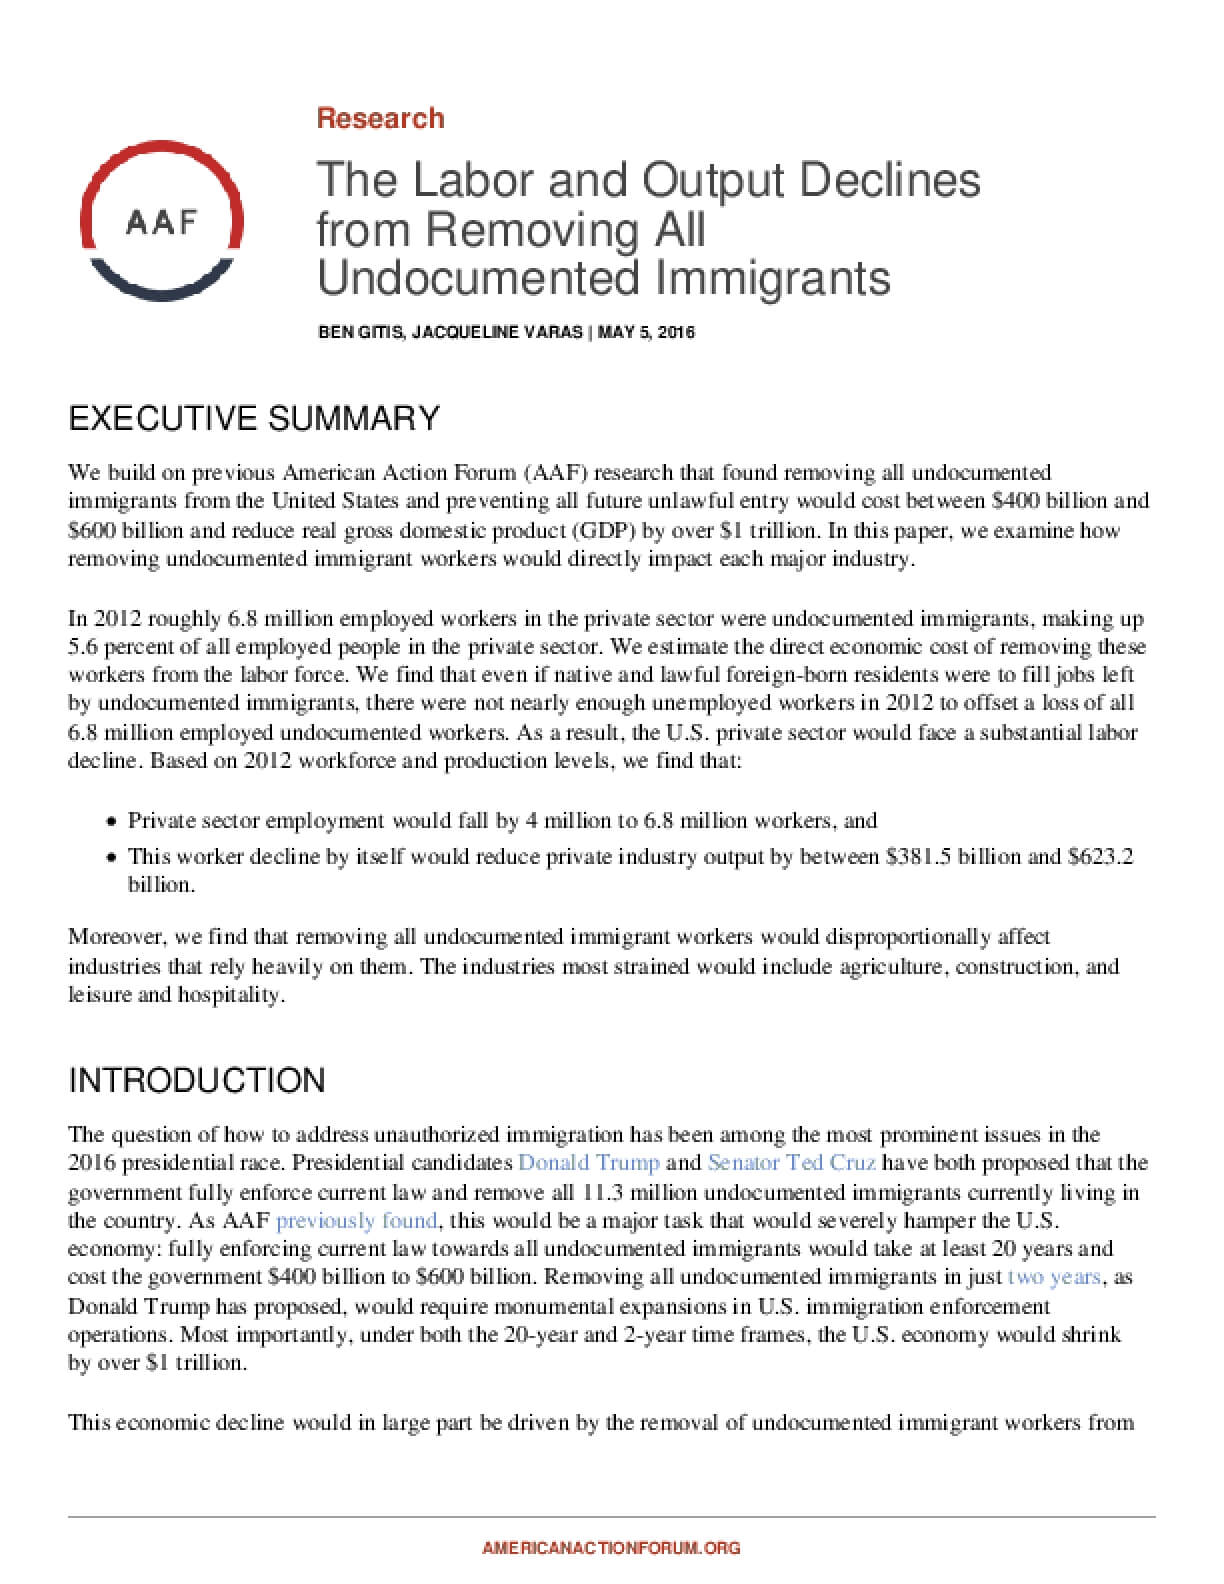 The Labor and Output Declines from Removing All Undocumented Immigrants